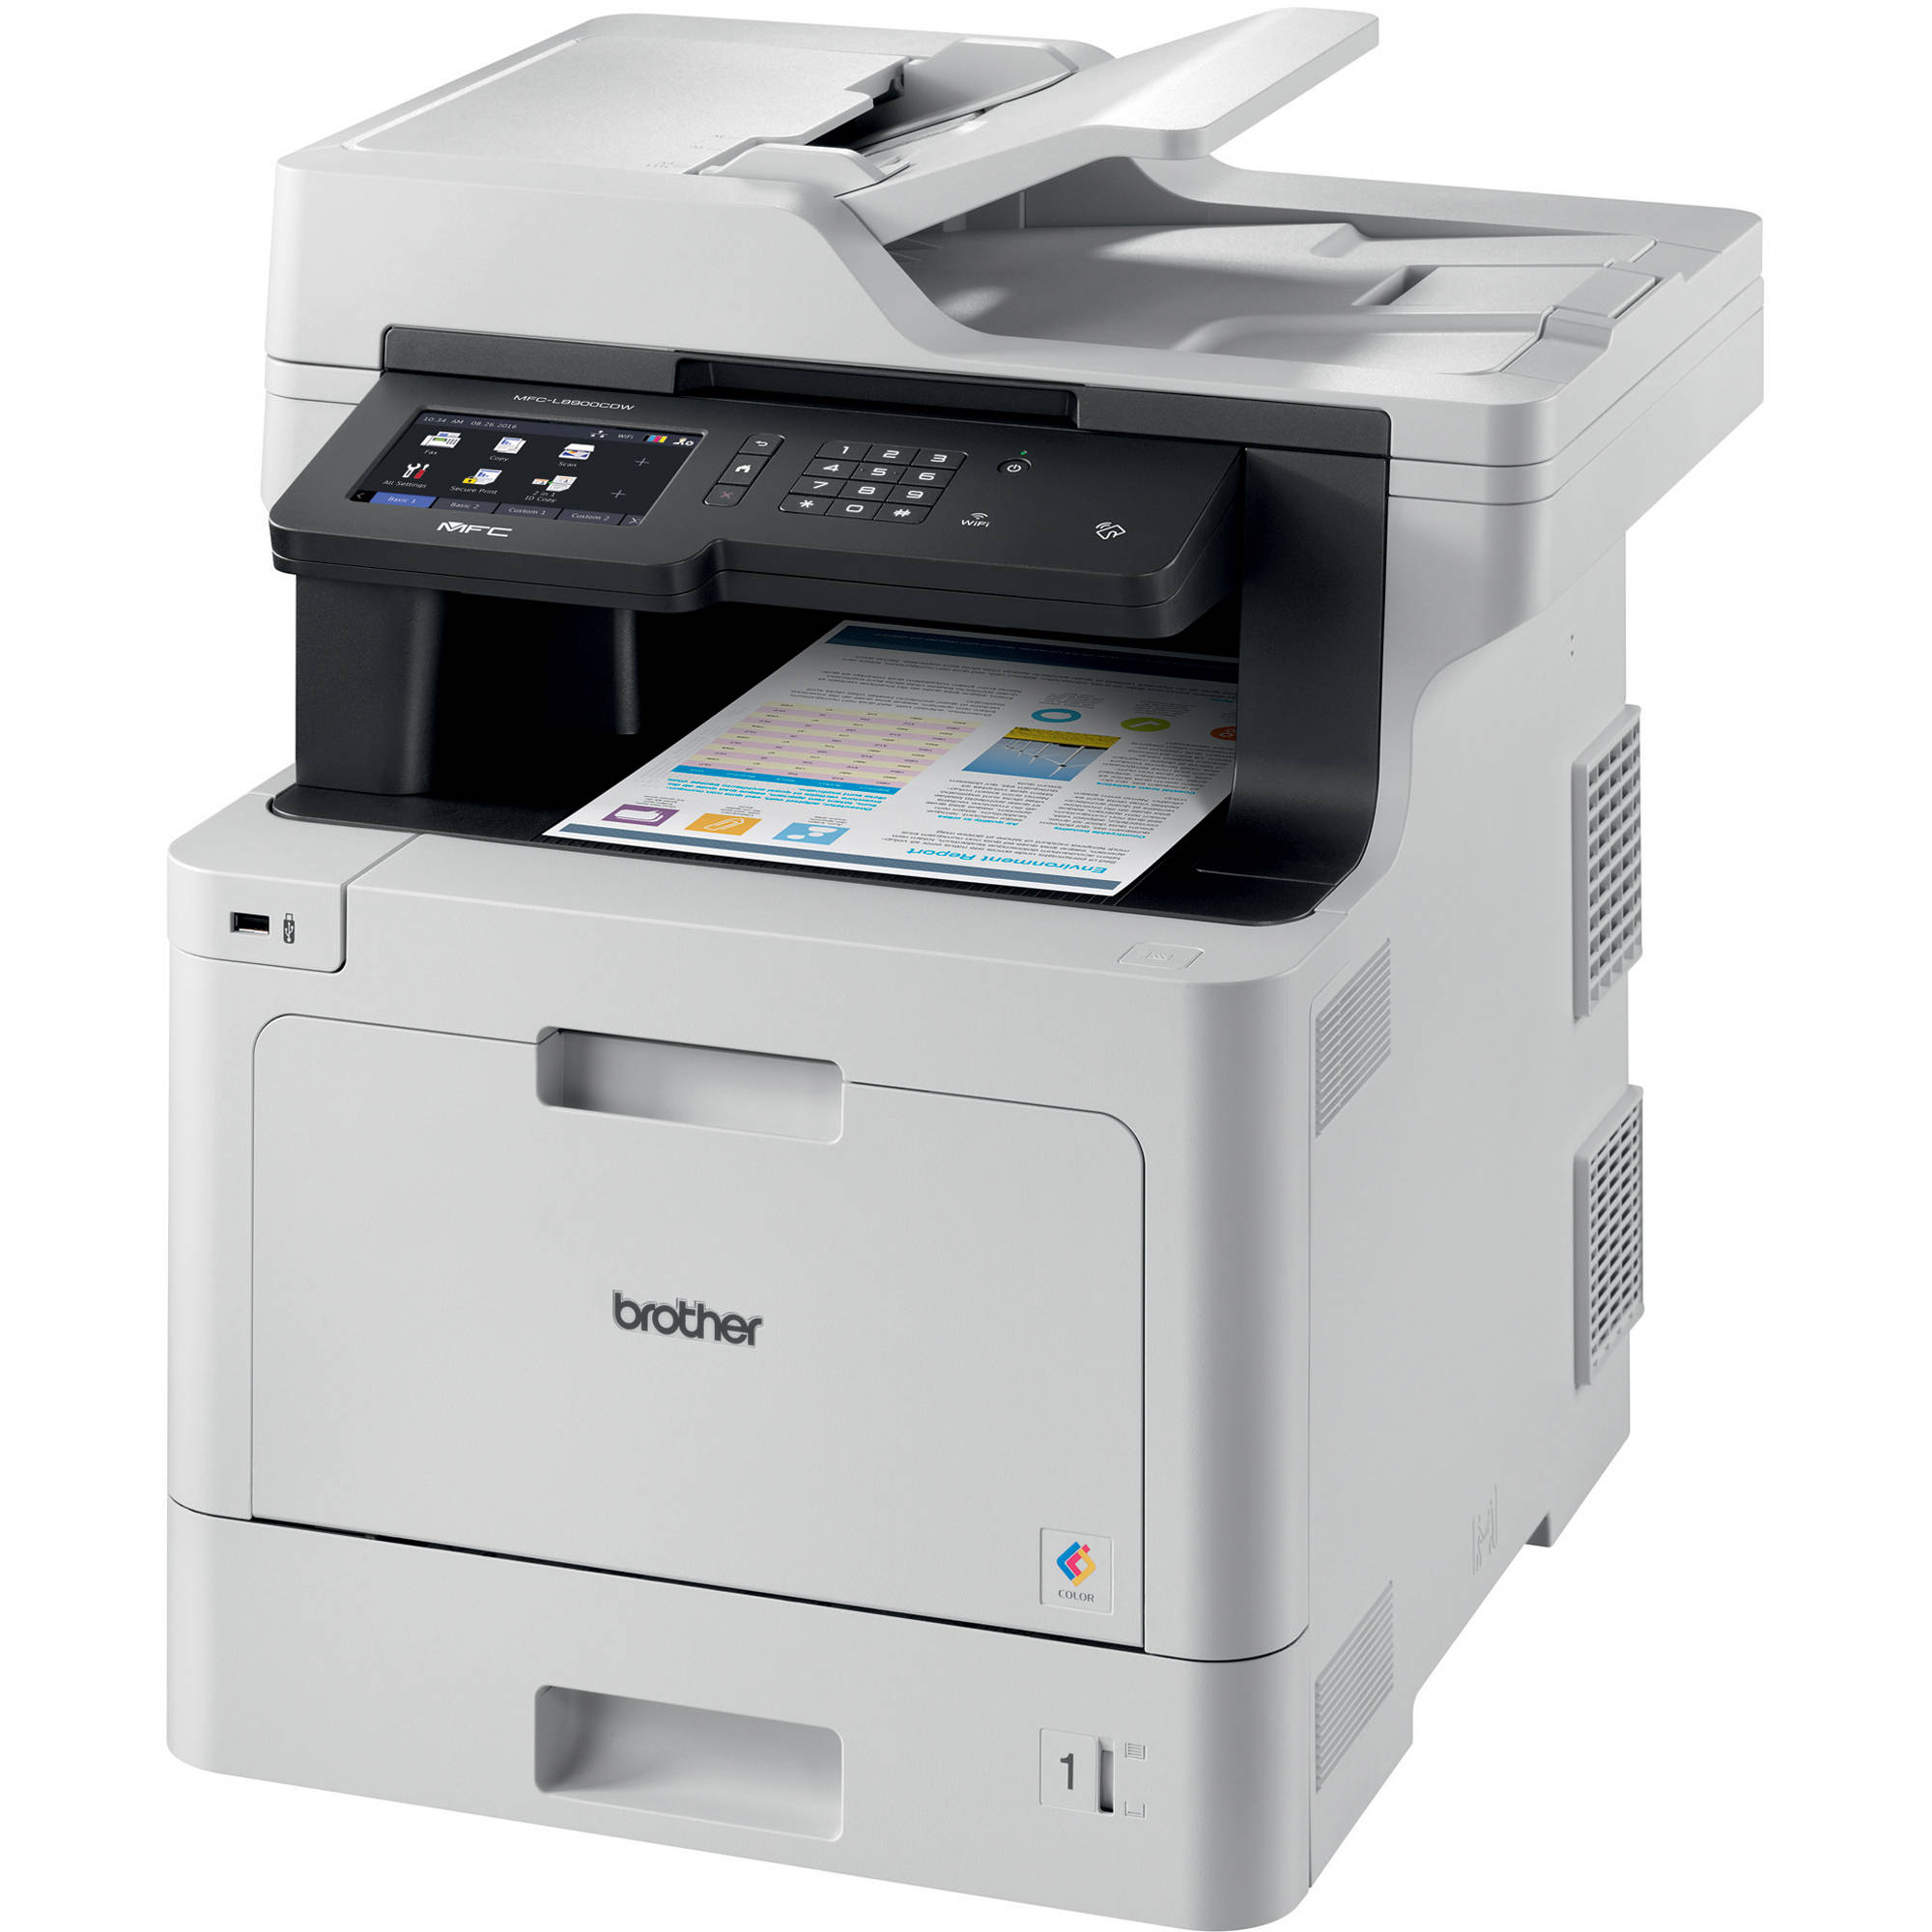 Brother MFC-9970CDW Printer Driver for Windows